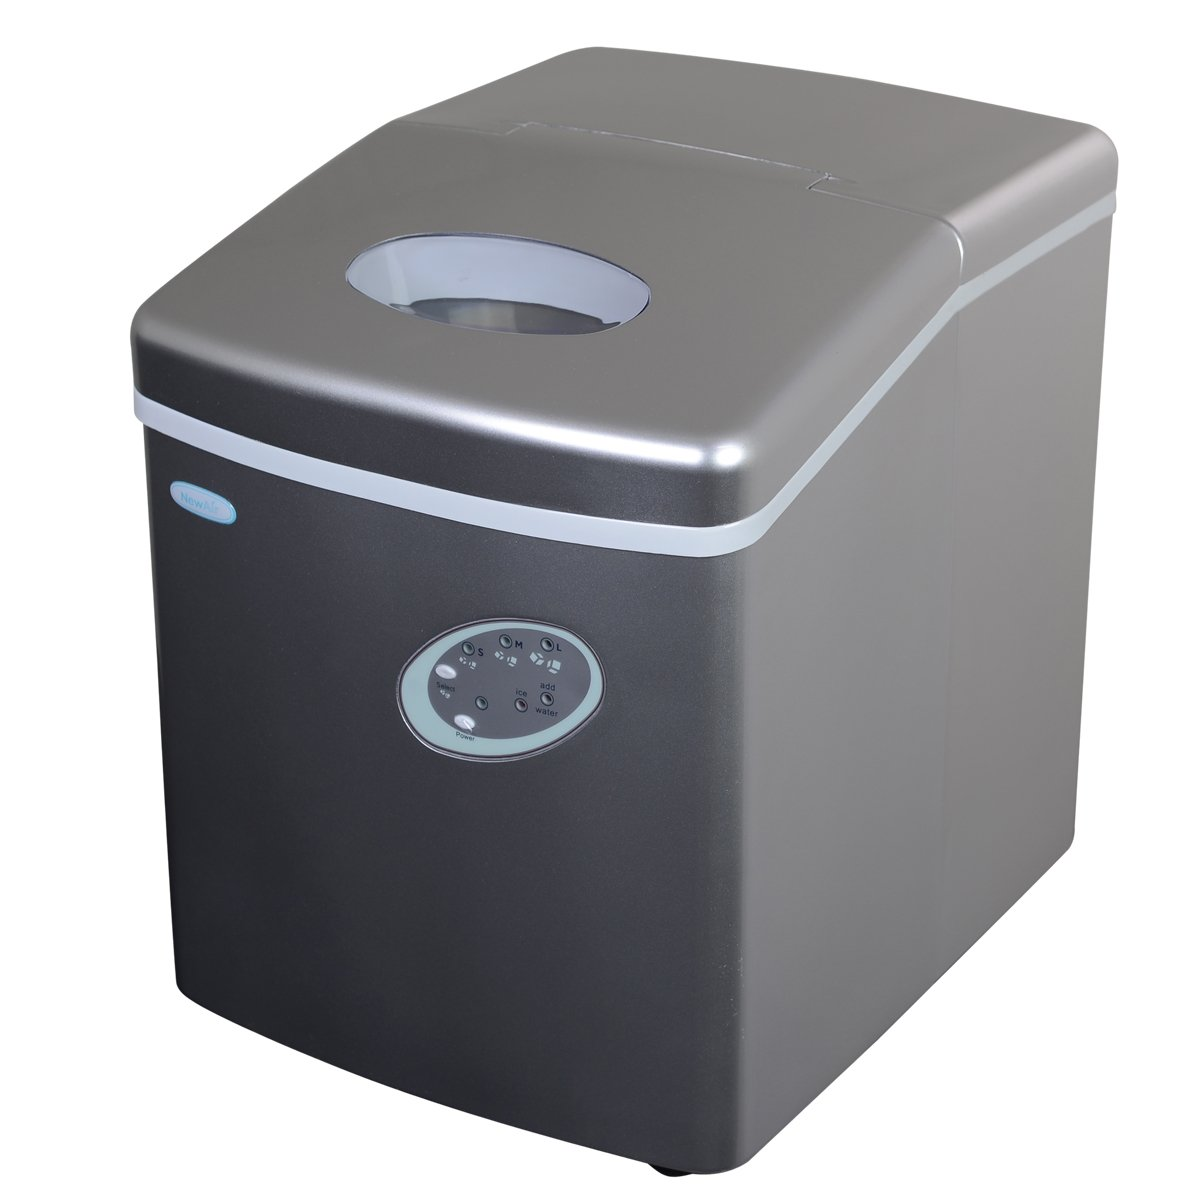 NewAir AI-100S: Portable Ice Maker with Convenient and Compact Design